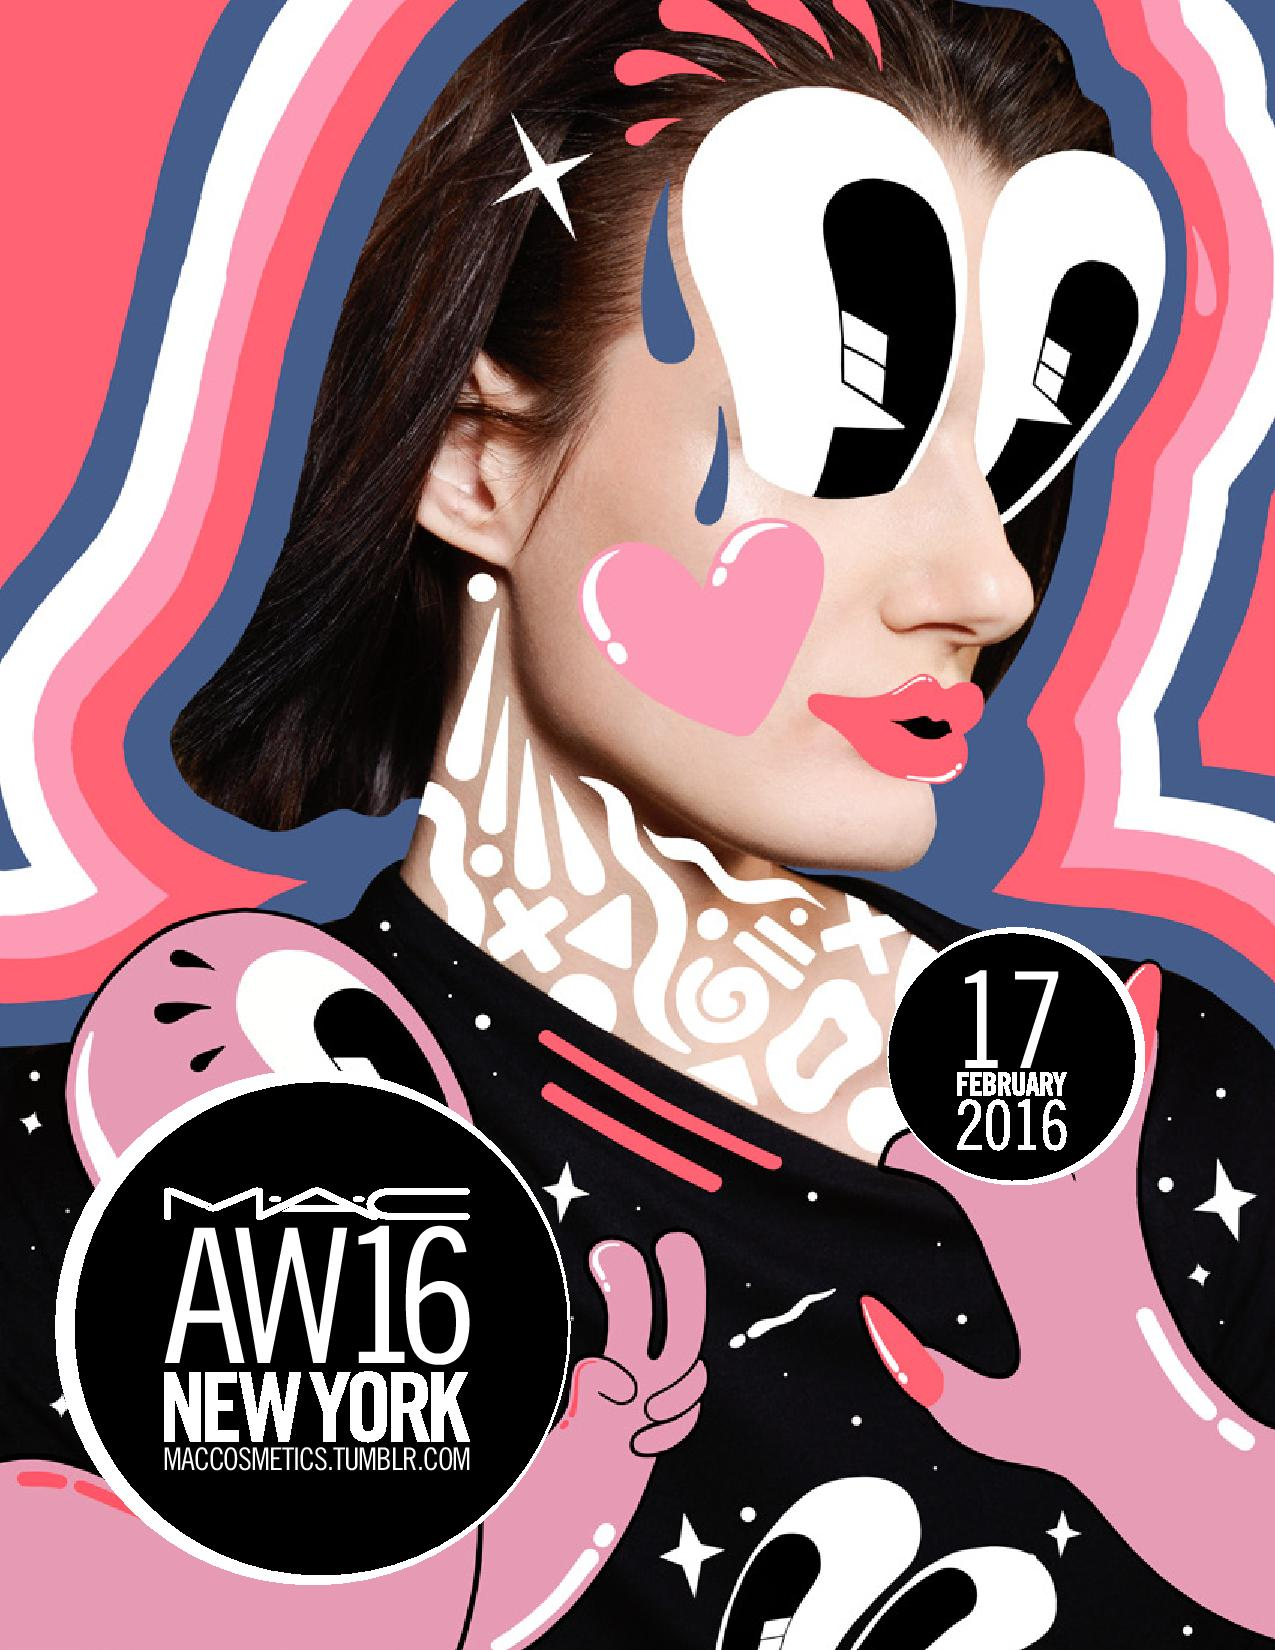 AW16_DAILY FACECHART_NEW YORK_FEB 17 (Delpozo, Michael Kors, Proenza Sch...-page-001